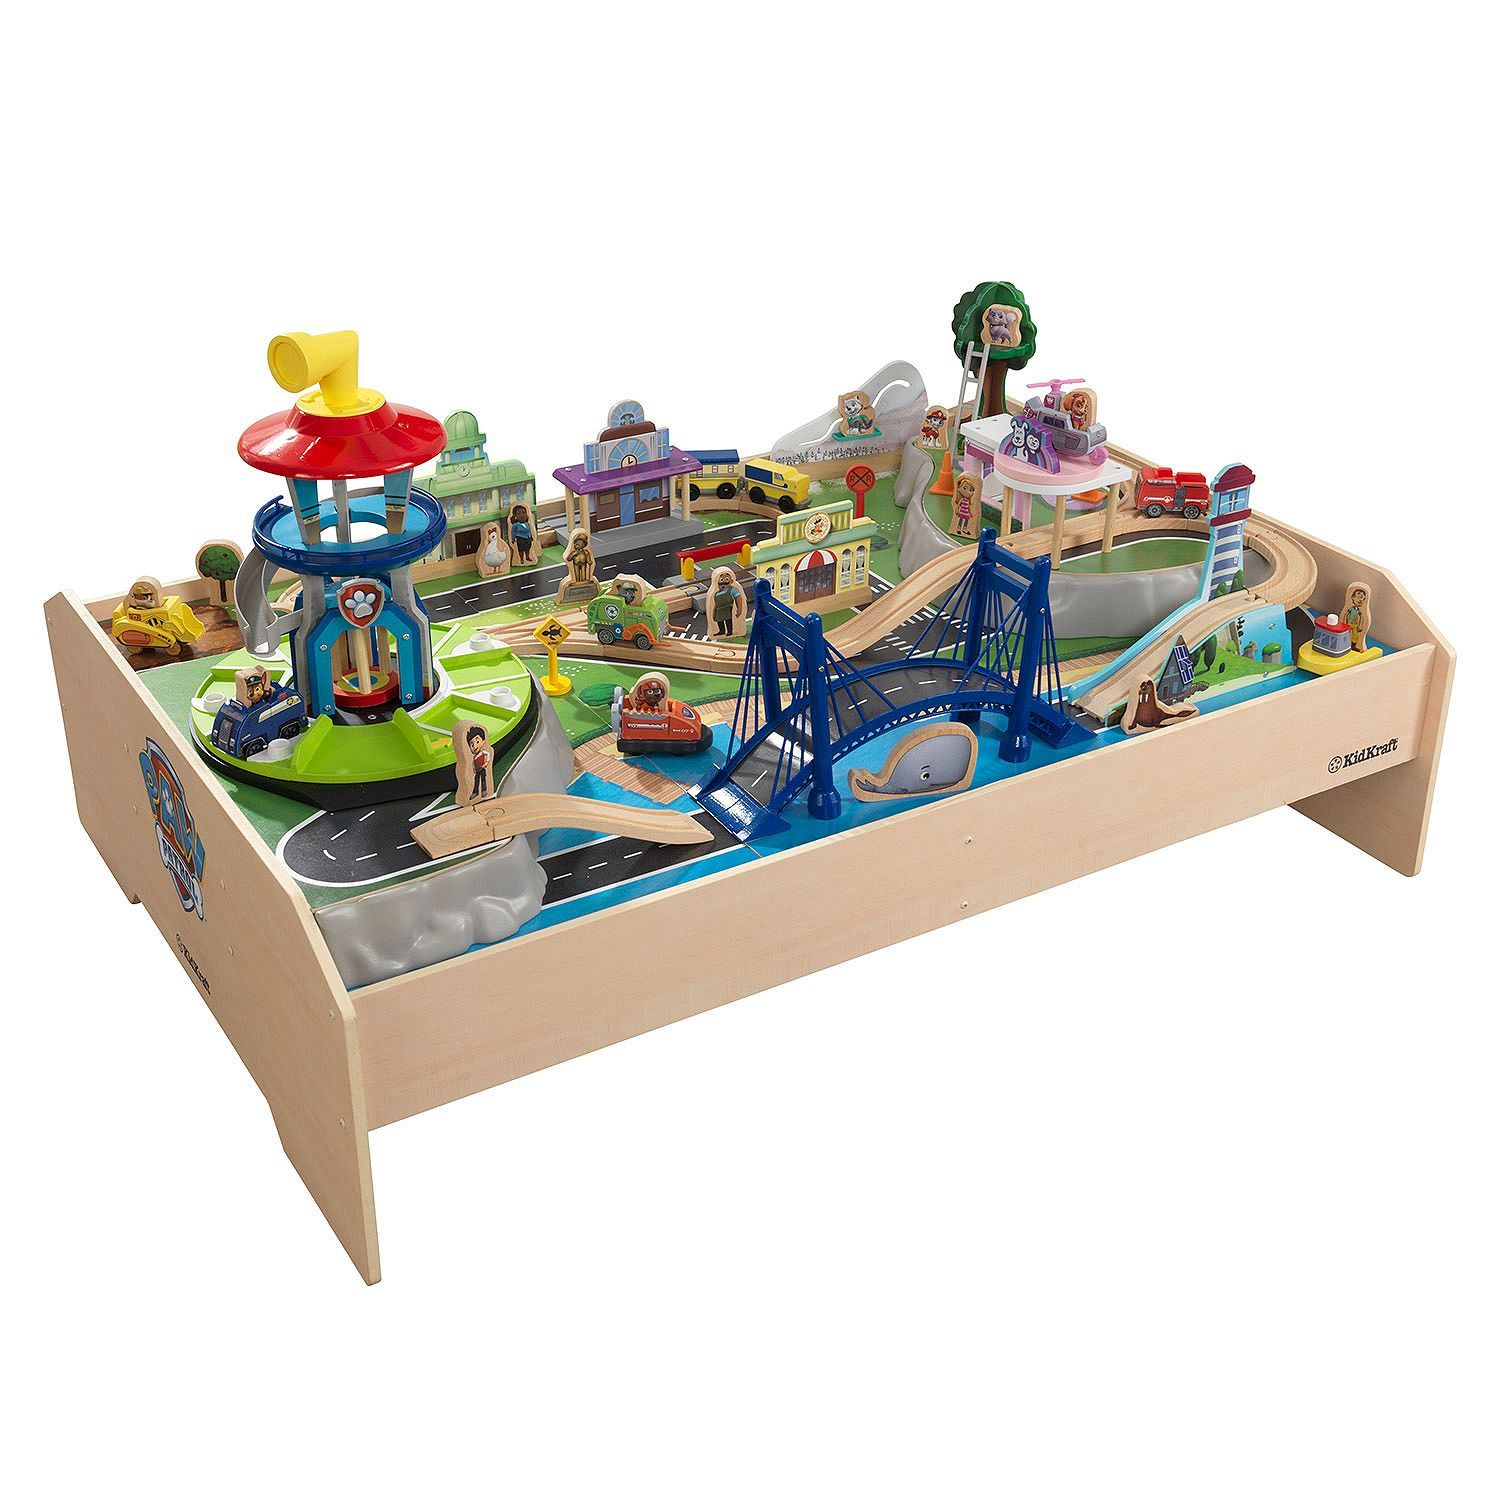 Paw Patrol Adventure Bay Play Table 99 98 Today Only Become A Coupon Queen Play Table Building For Kids Paw Patrol